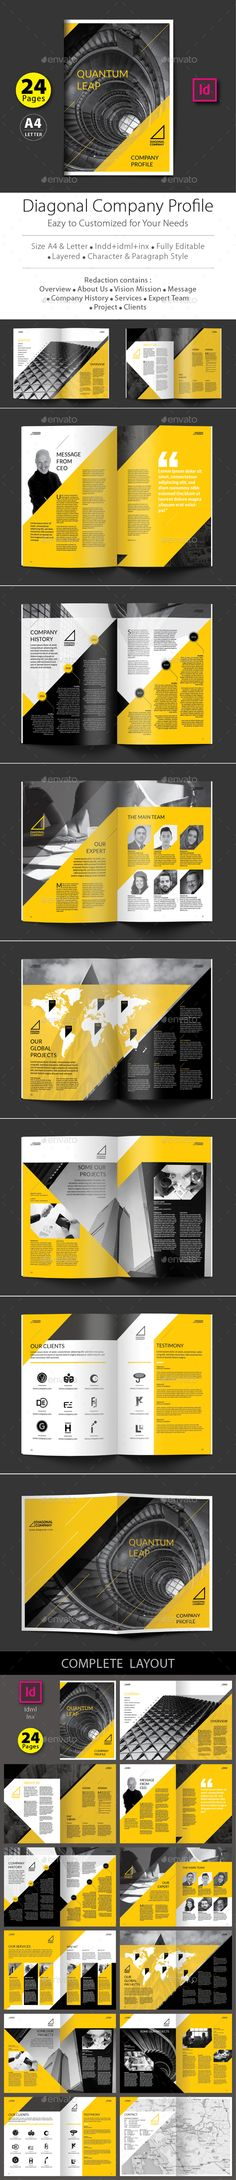 Minimalfolio #6 is a horizontal photography portfolio A4 brochure - corporate profile template